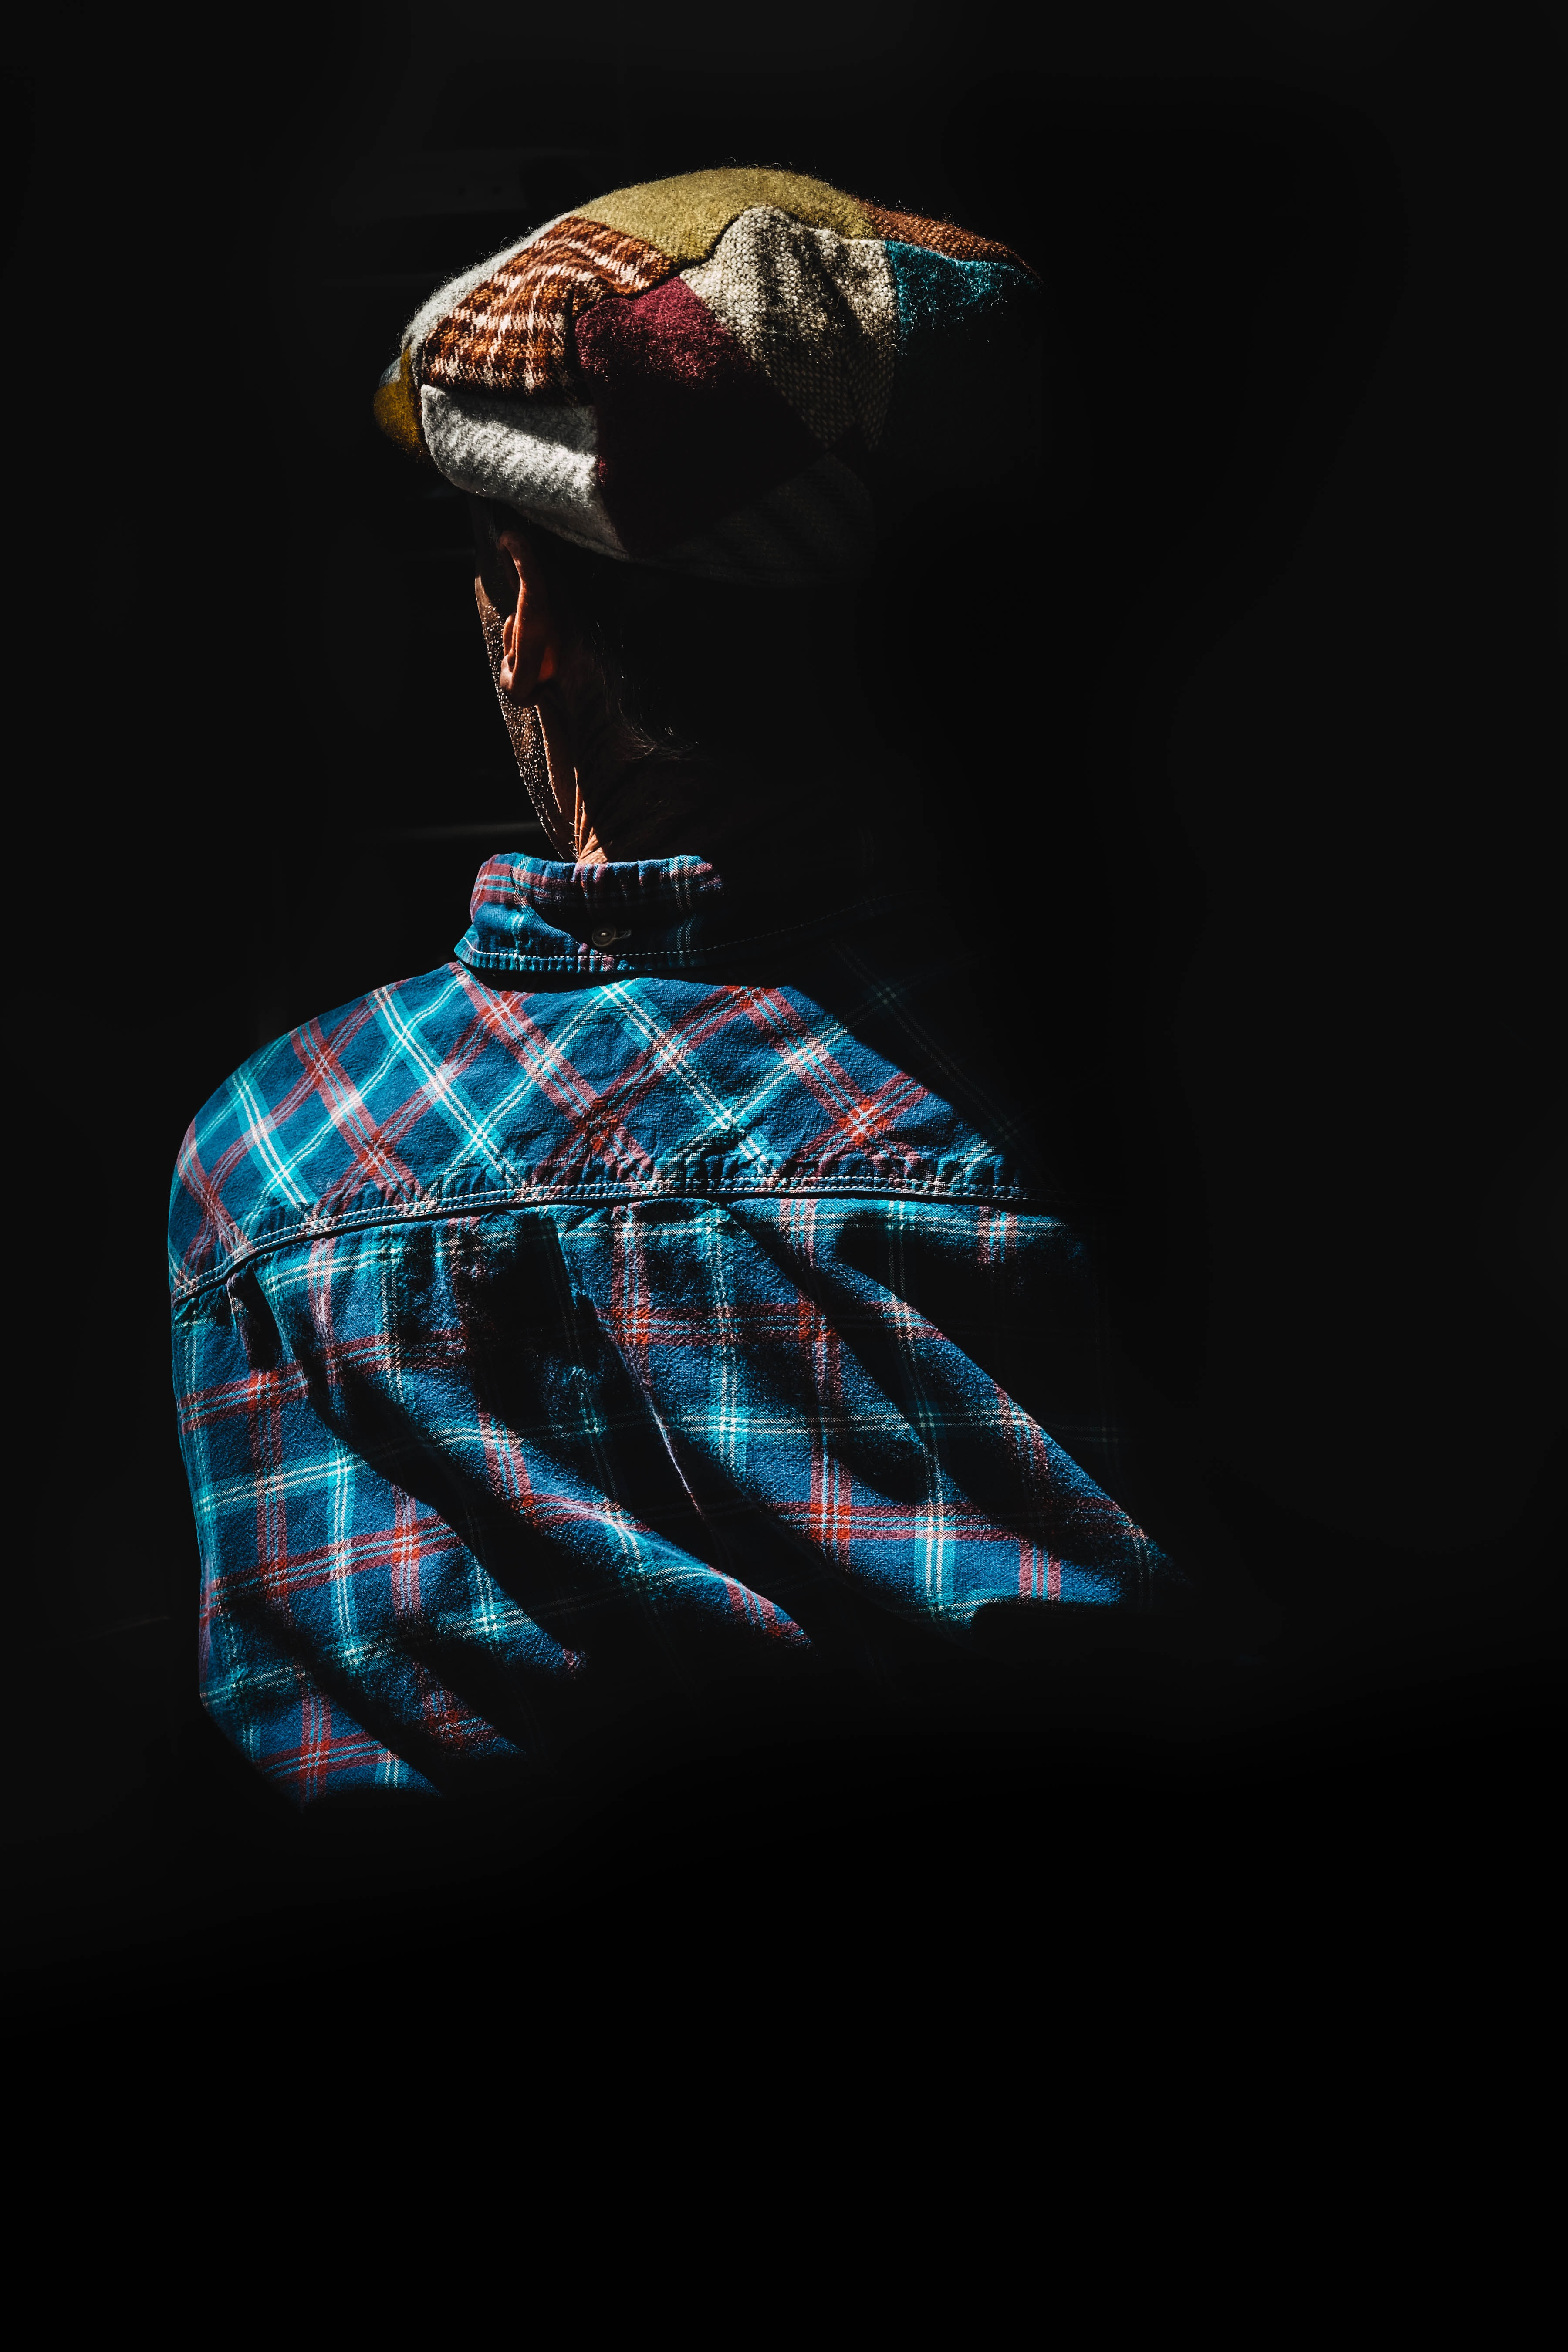 woman wearing blue and red plaid collared shirt